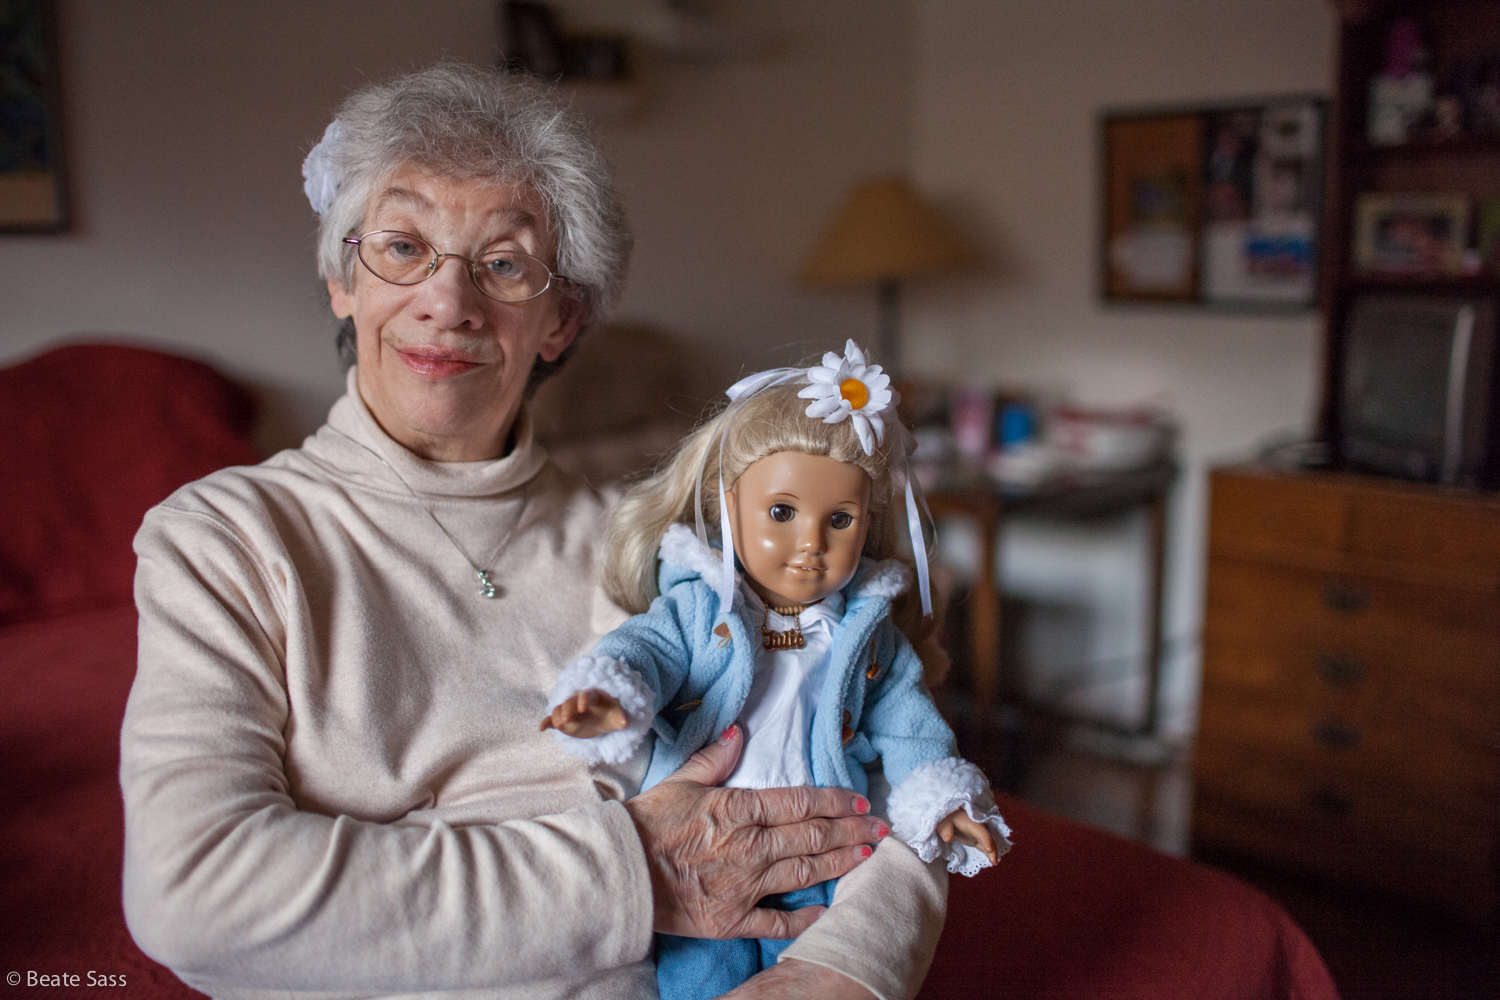 Mona is 73-years-old and is beingcaredfor by her brother, Claude, and sister-in-law, Nancy. The stress of caring for Mona has taken a toll on the health of the caregivers. Mona is on the waiting list for aMedicaid Waiver. [Full story]